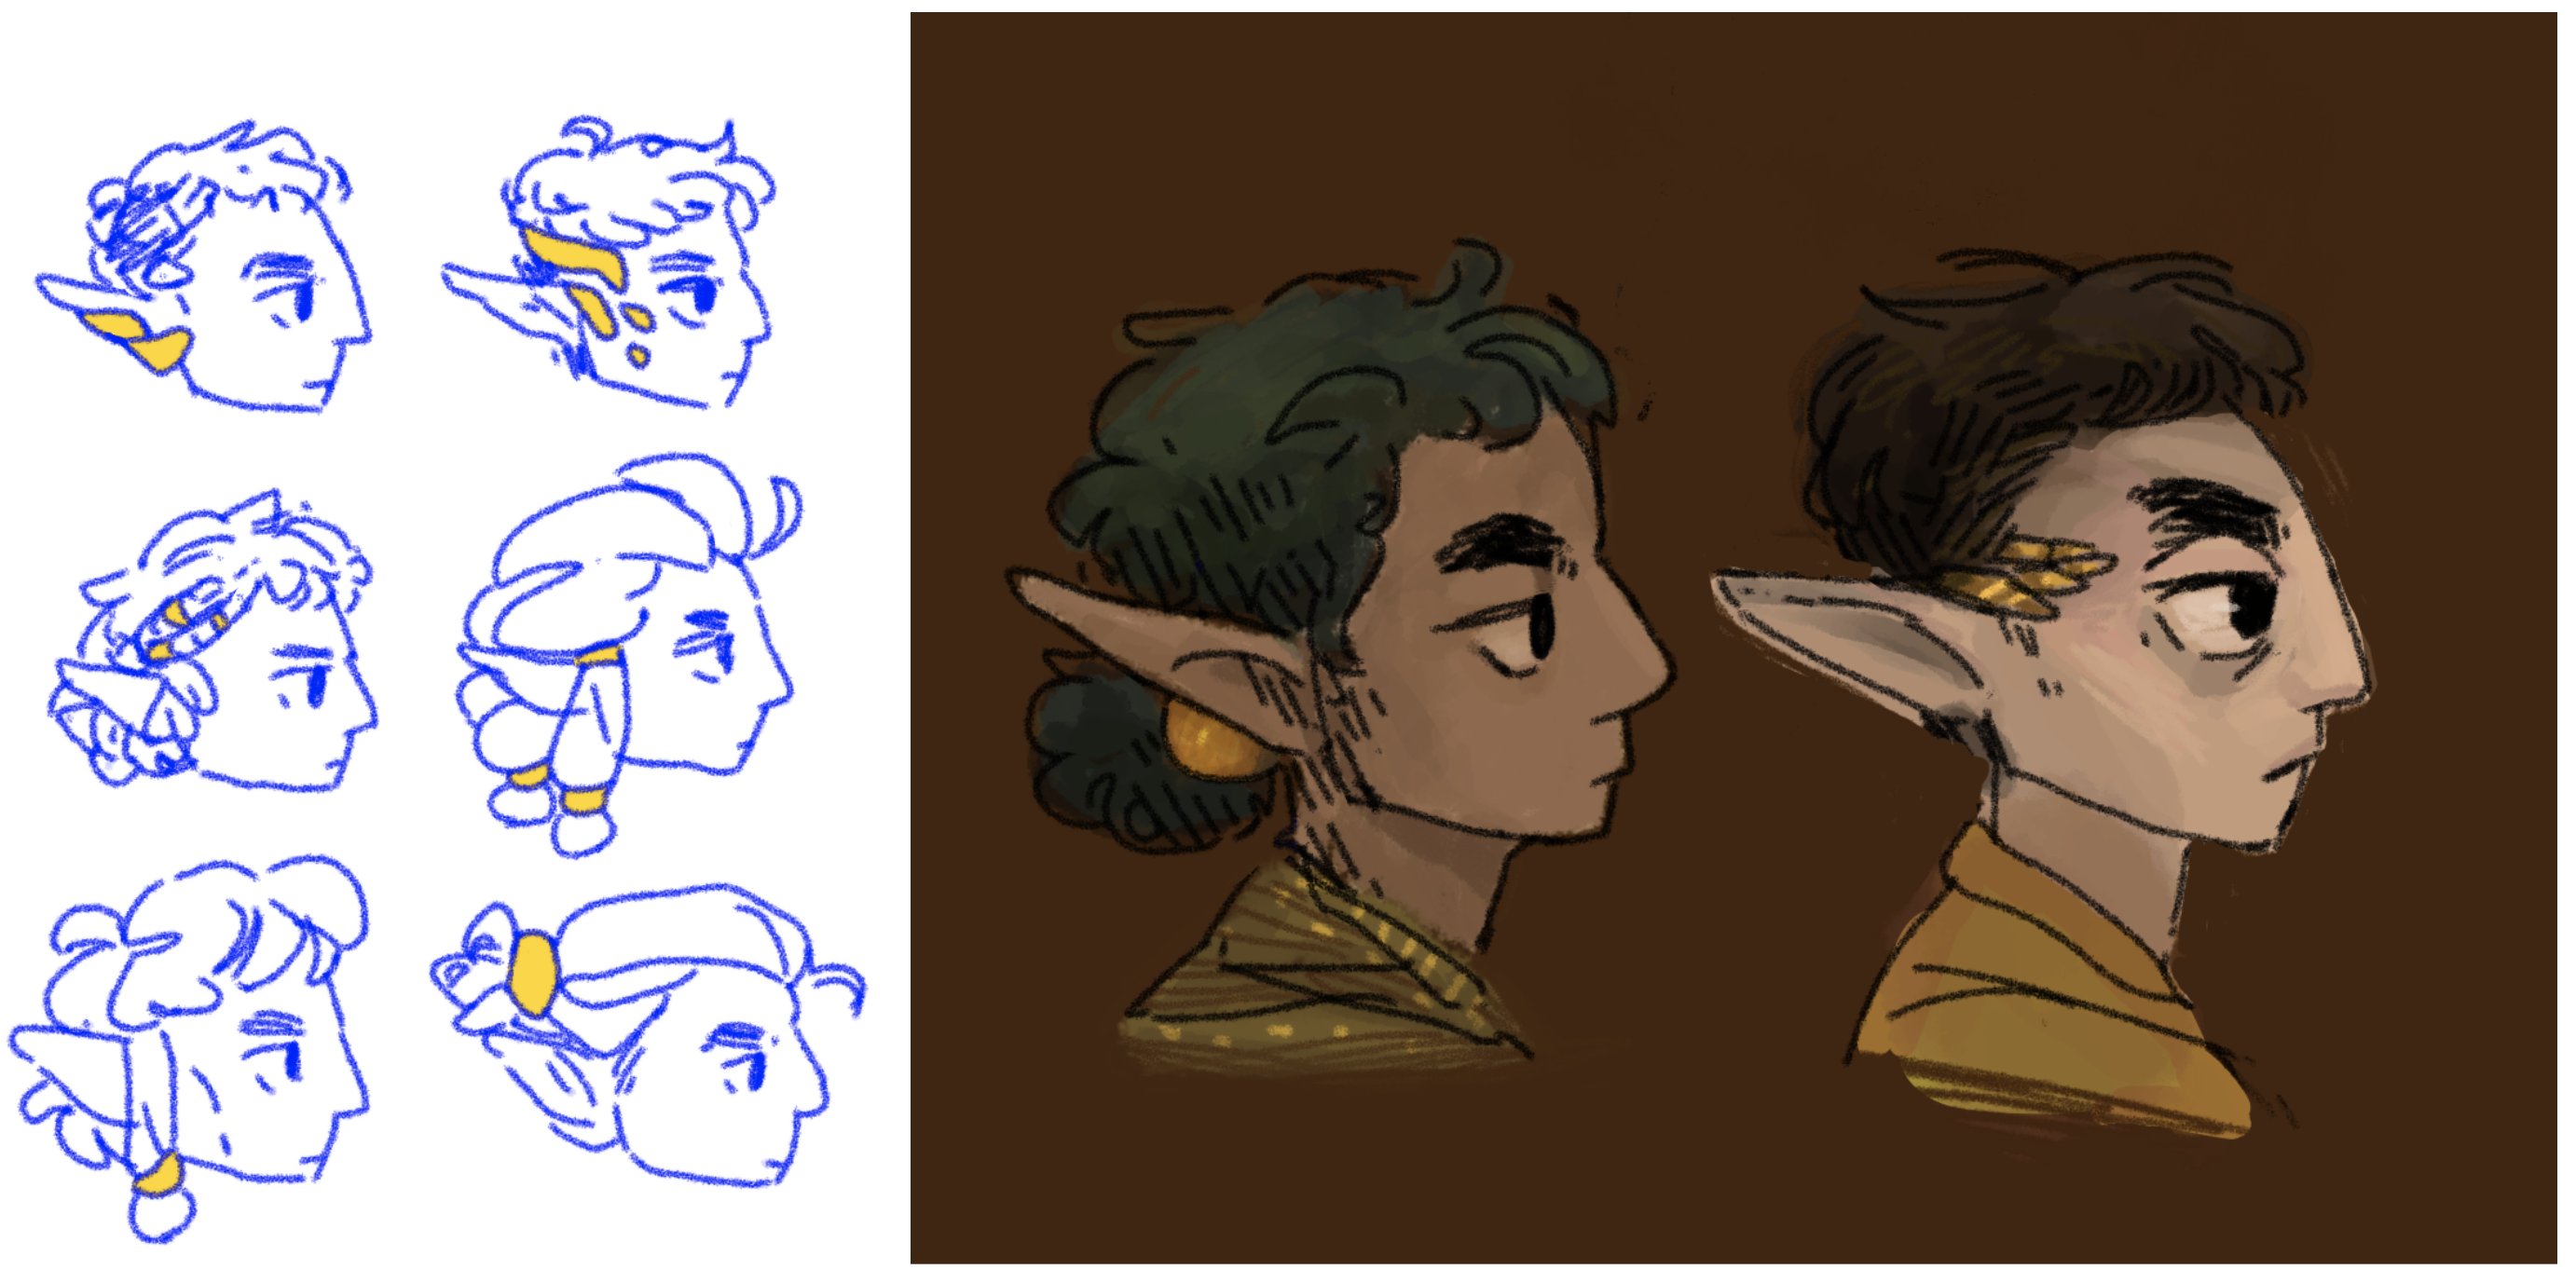 Elf - character makeover options